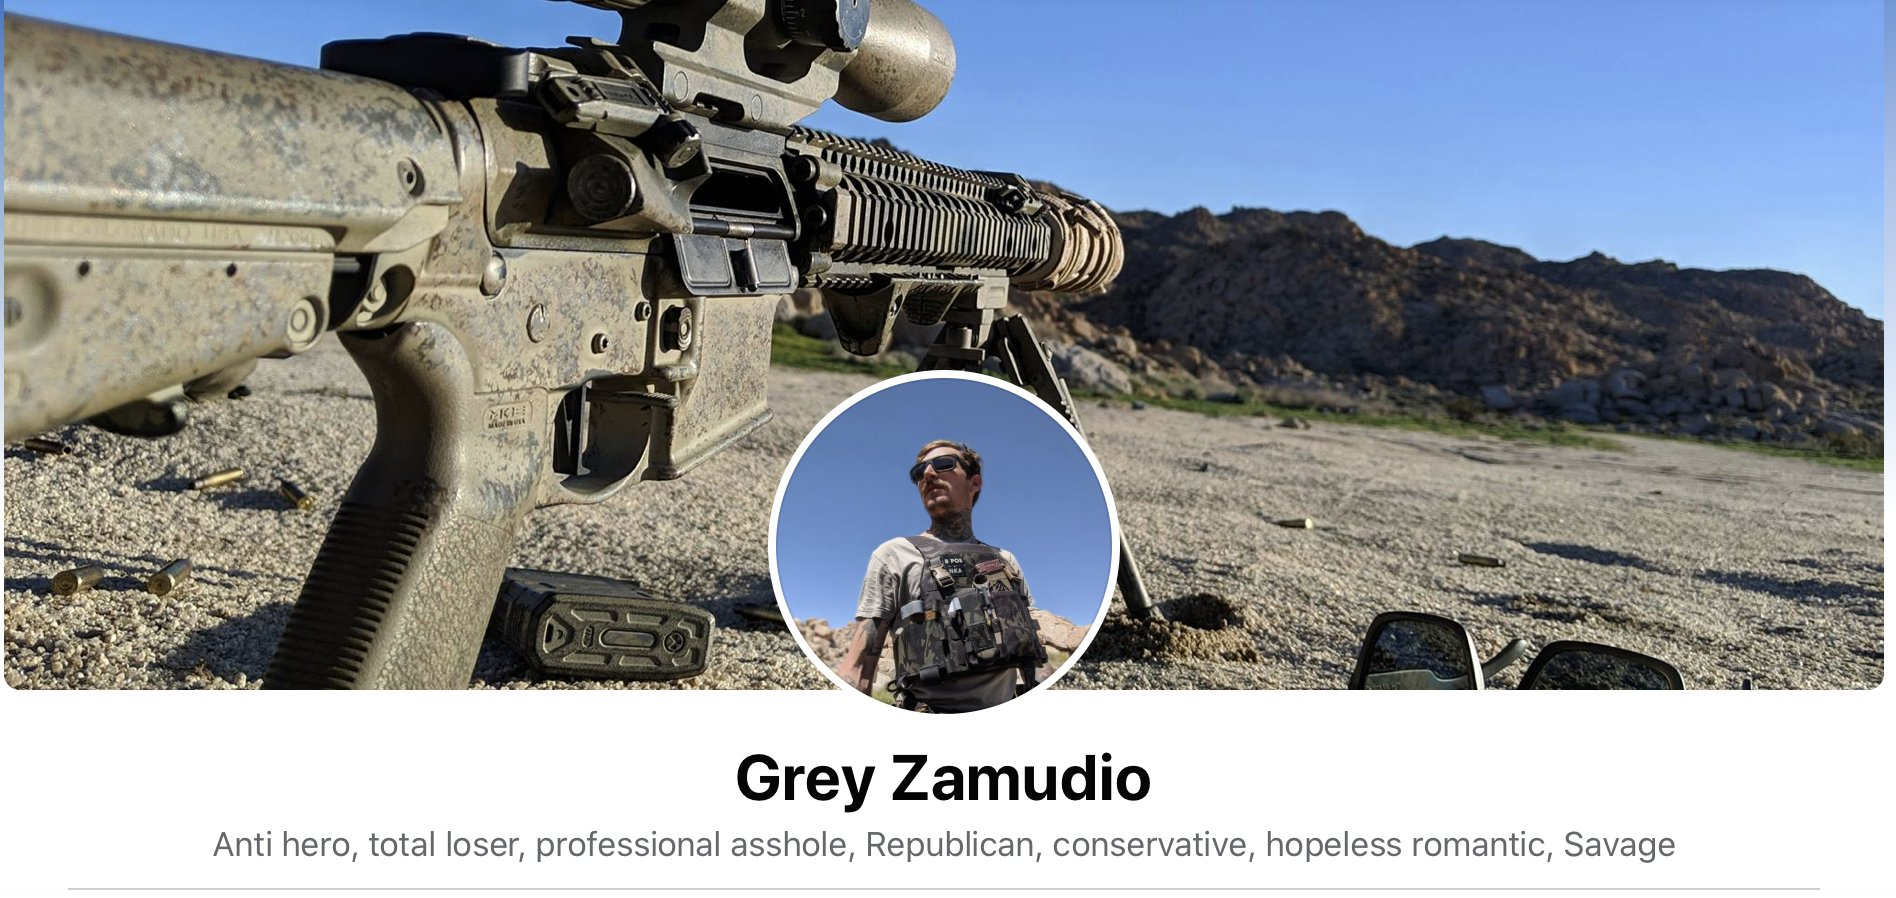 Zamudio's facebook banner, showing one of his rifles on a bipod in the desert. In it he describes himself as 'anti hero, total loser, professional asshole, Republican, hopeless romantic, Savage.'